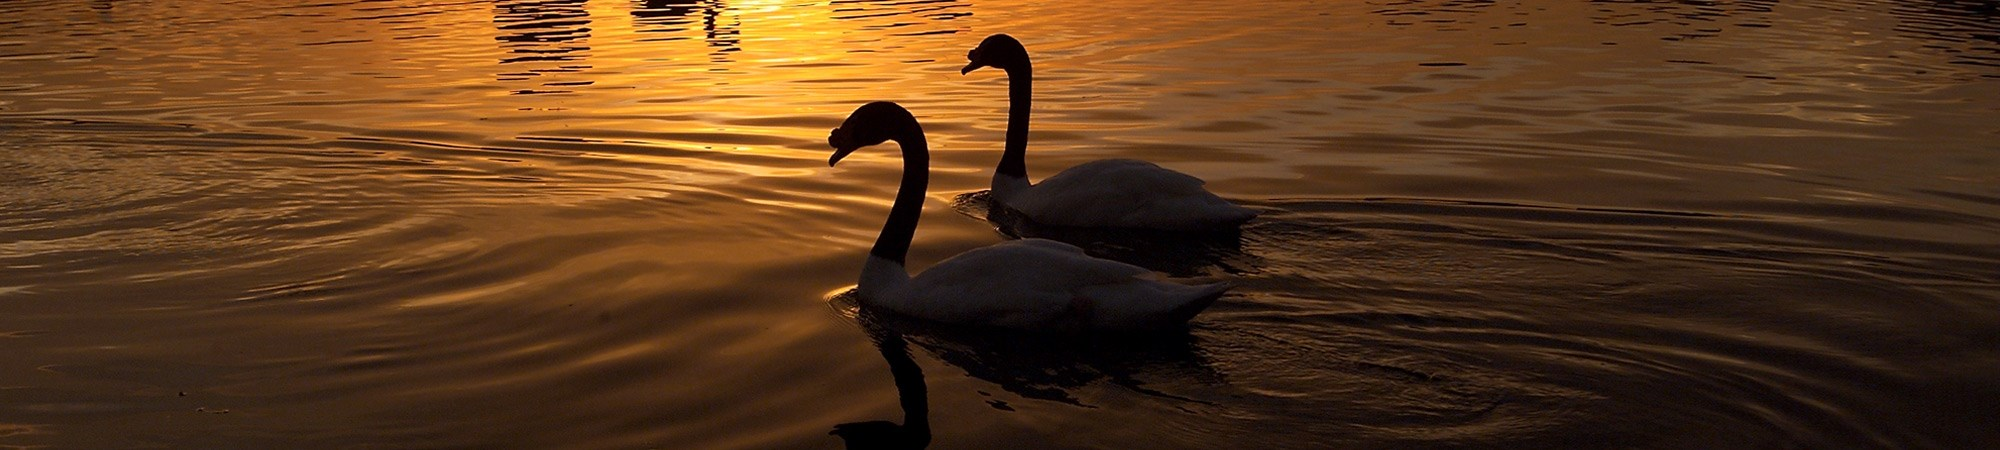 Swans swimming in the evening